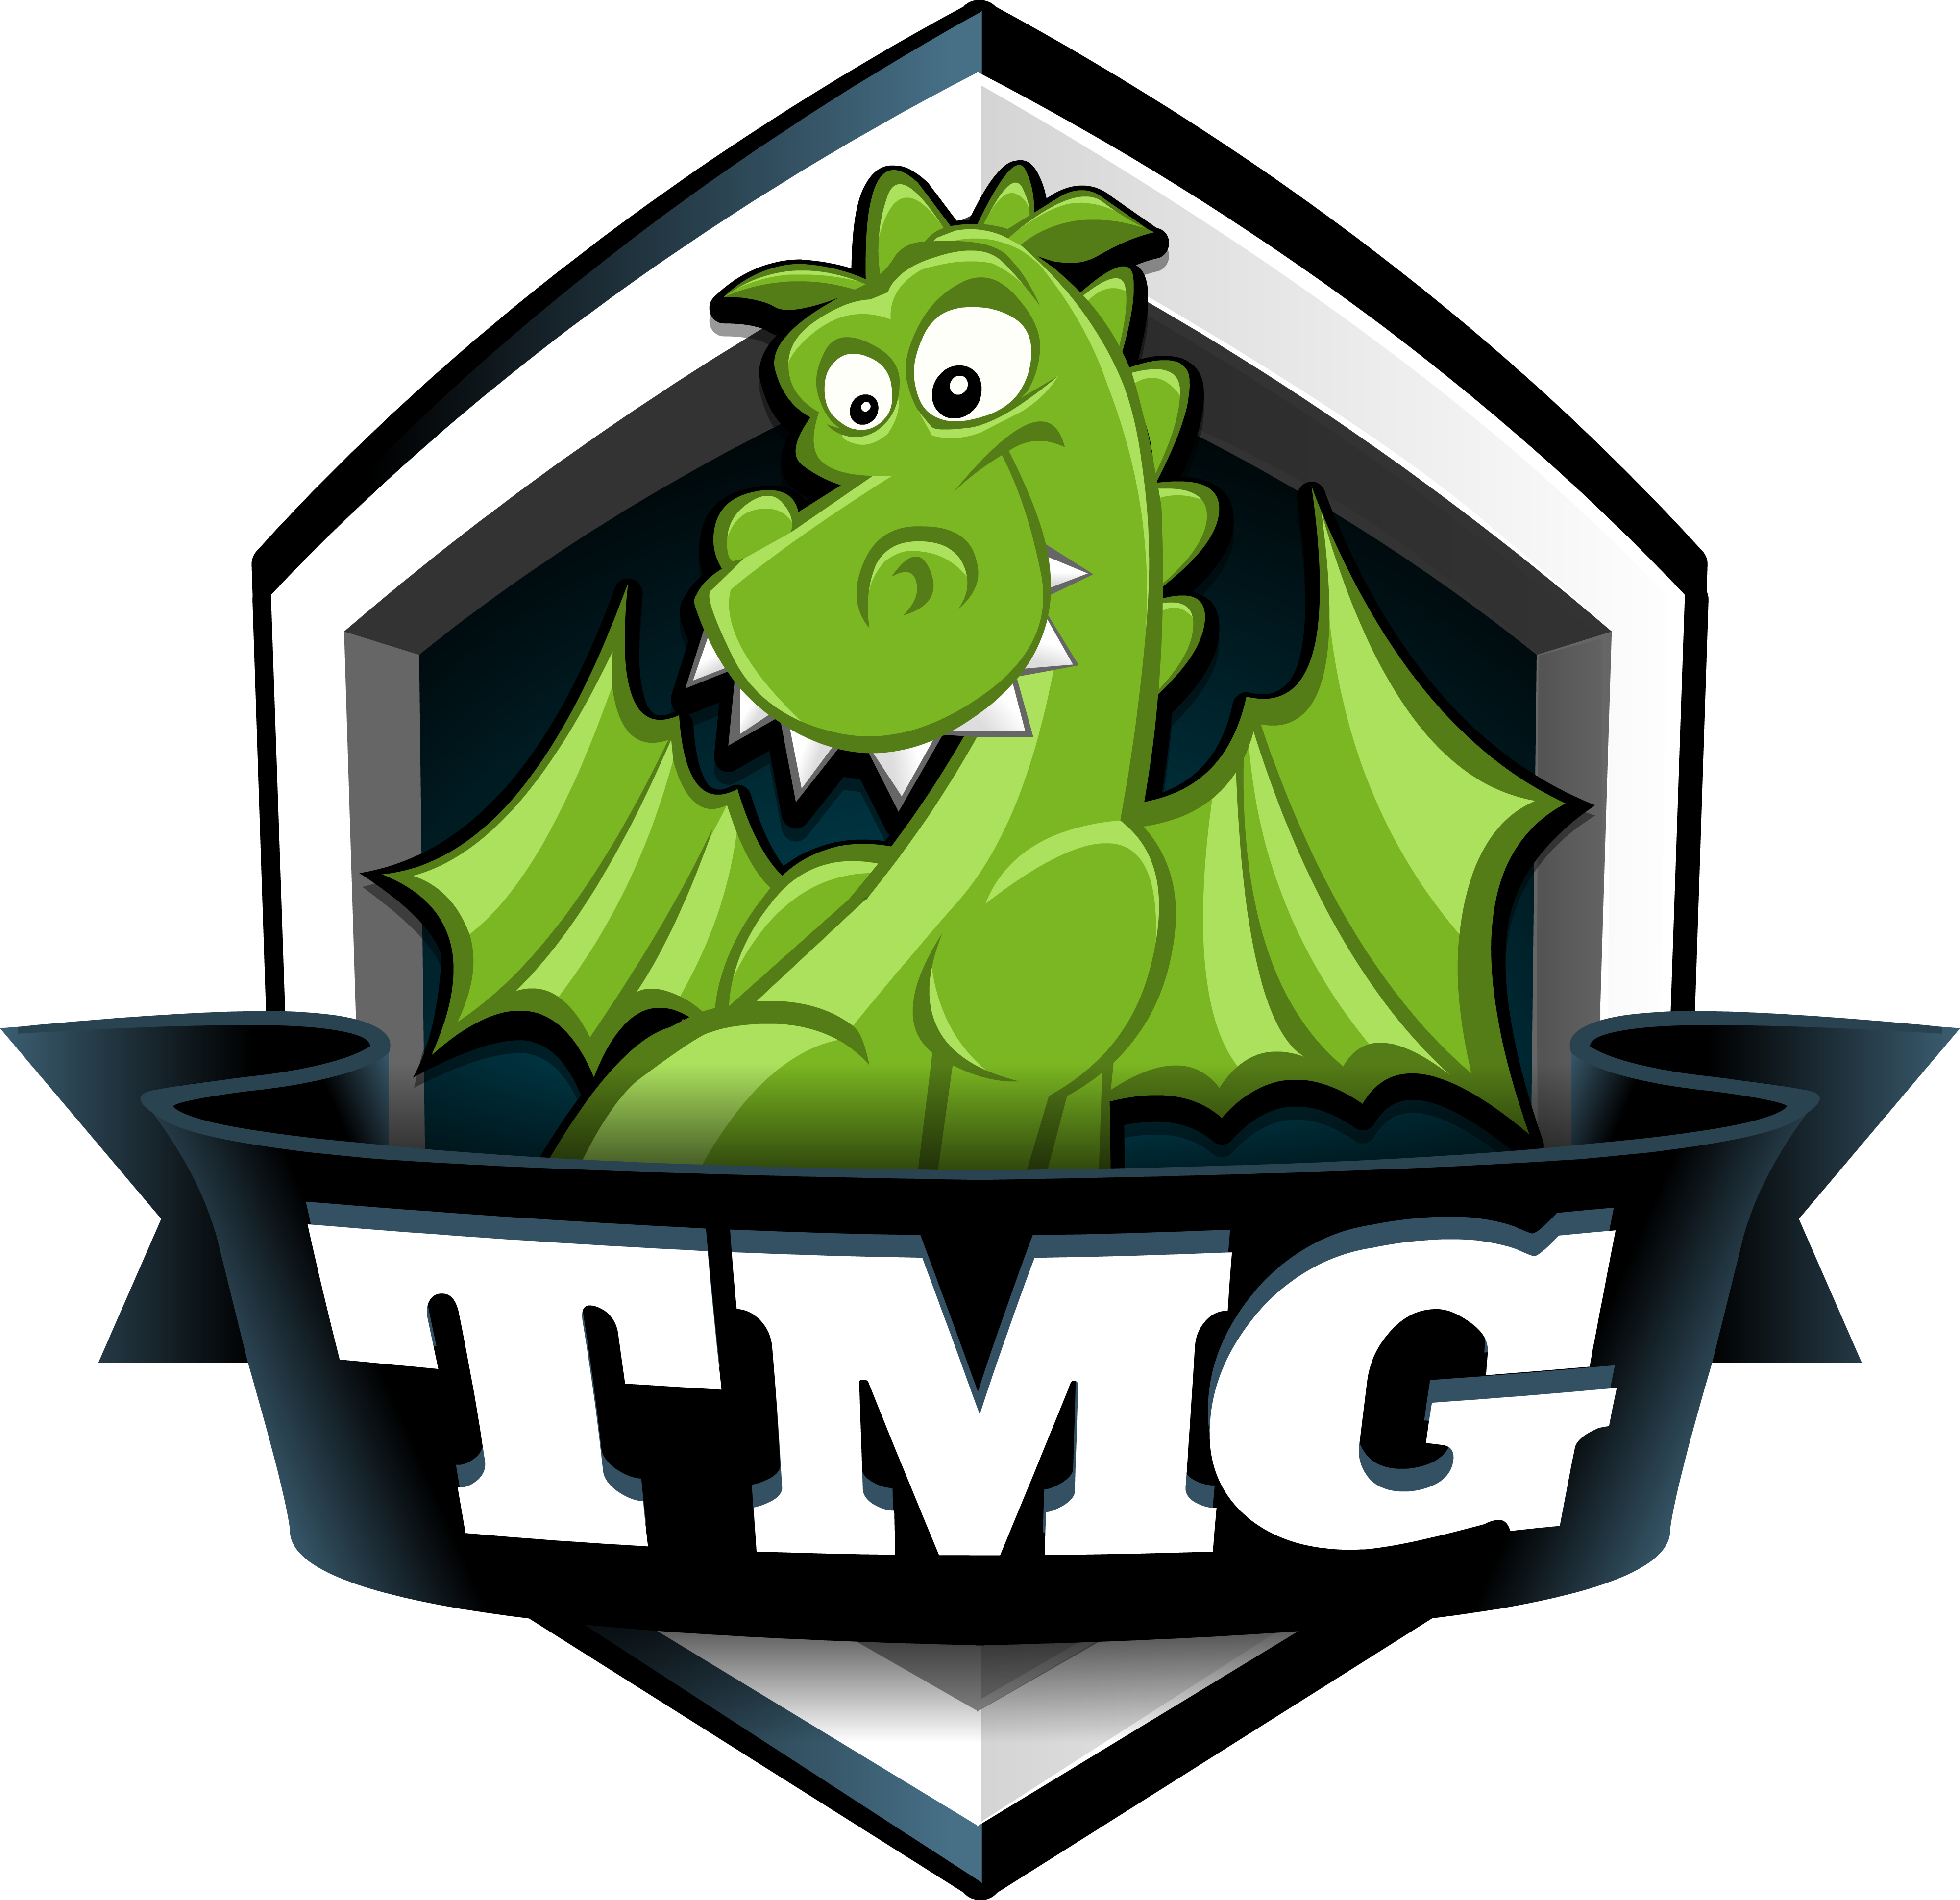 TMG - Tasty Minstrel Games